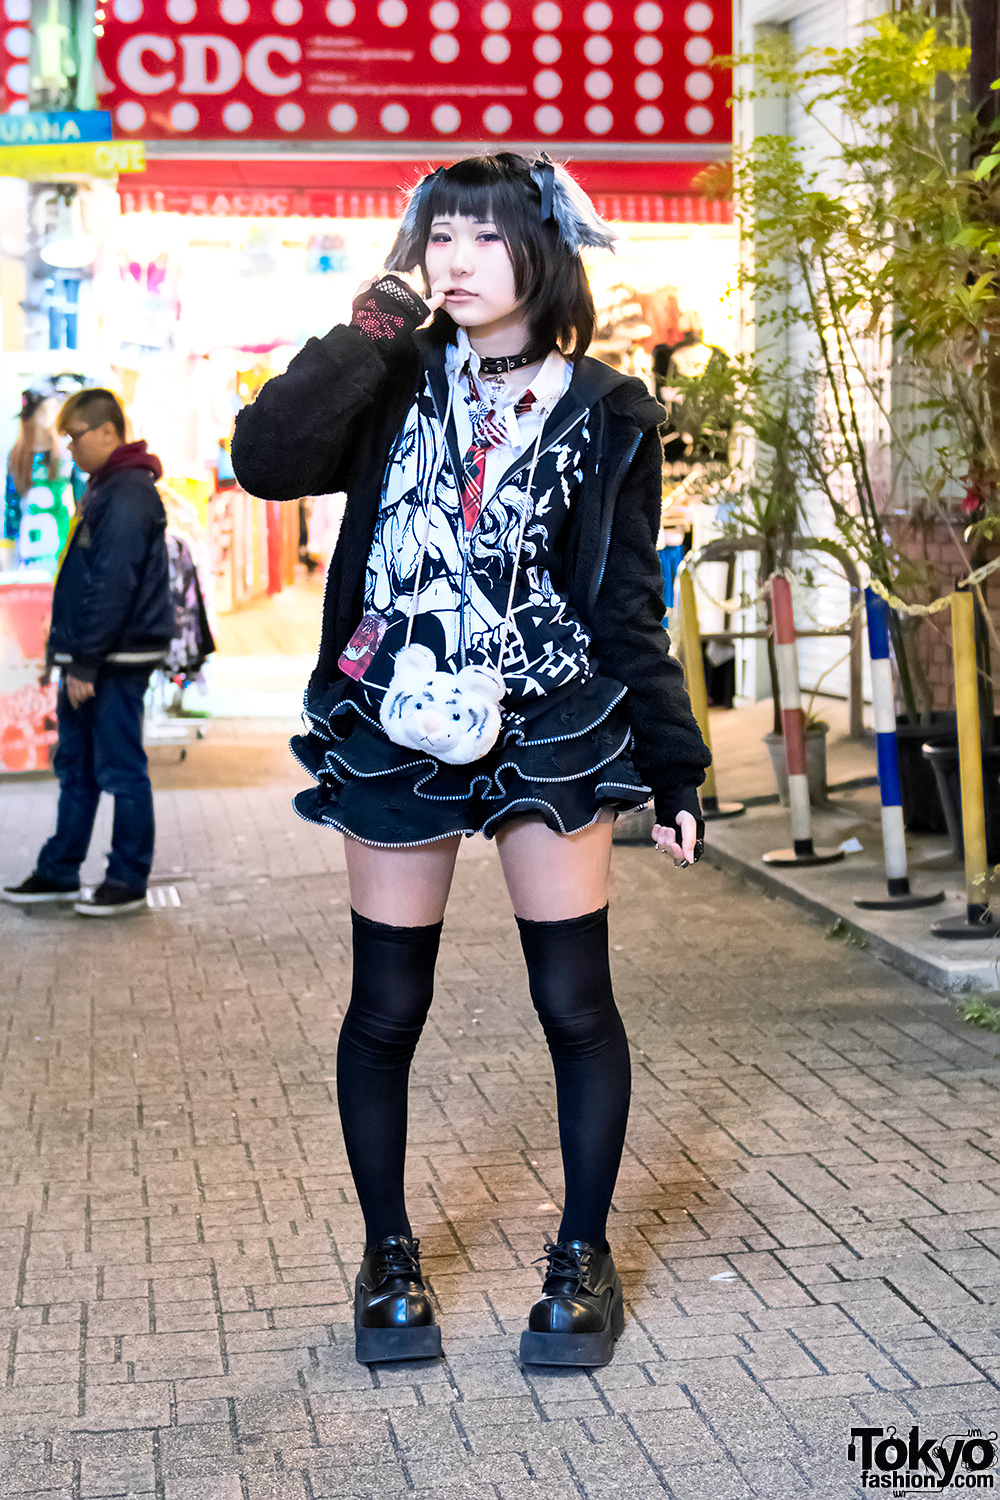 e4d2f9f0e601 Lemon s favorite Japanese fashion brands include Hypercore and  Hellcatpunks. She listens to music by Dempagumi.inc